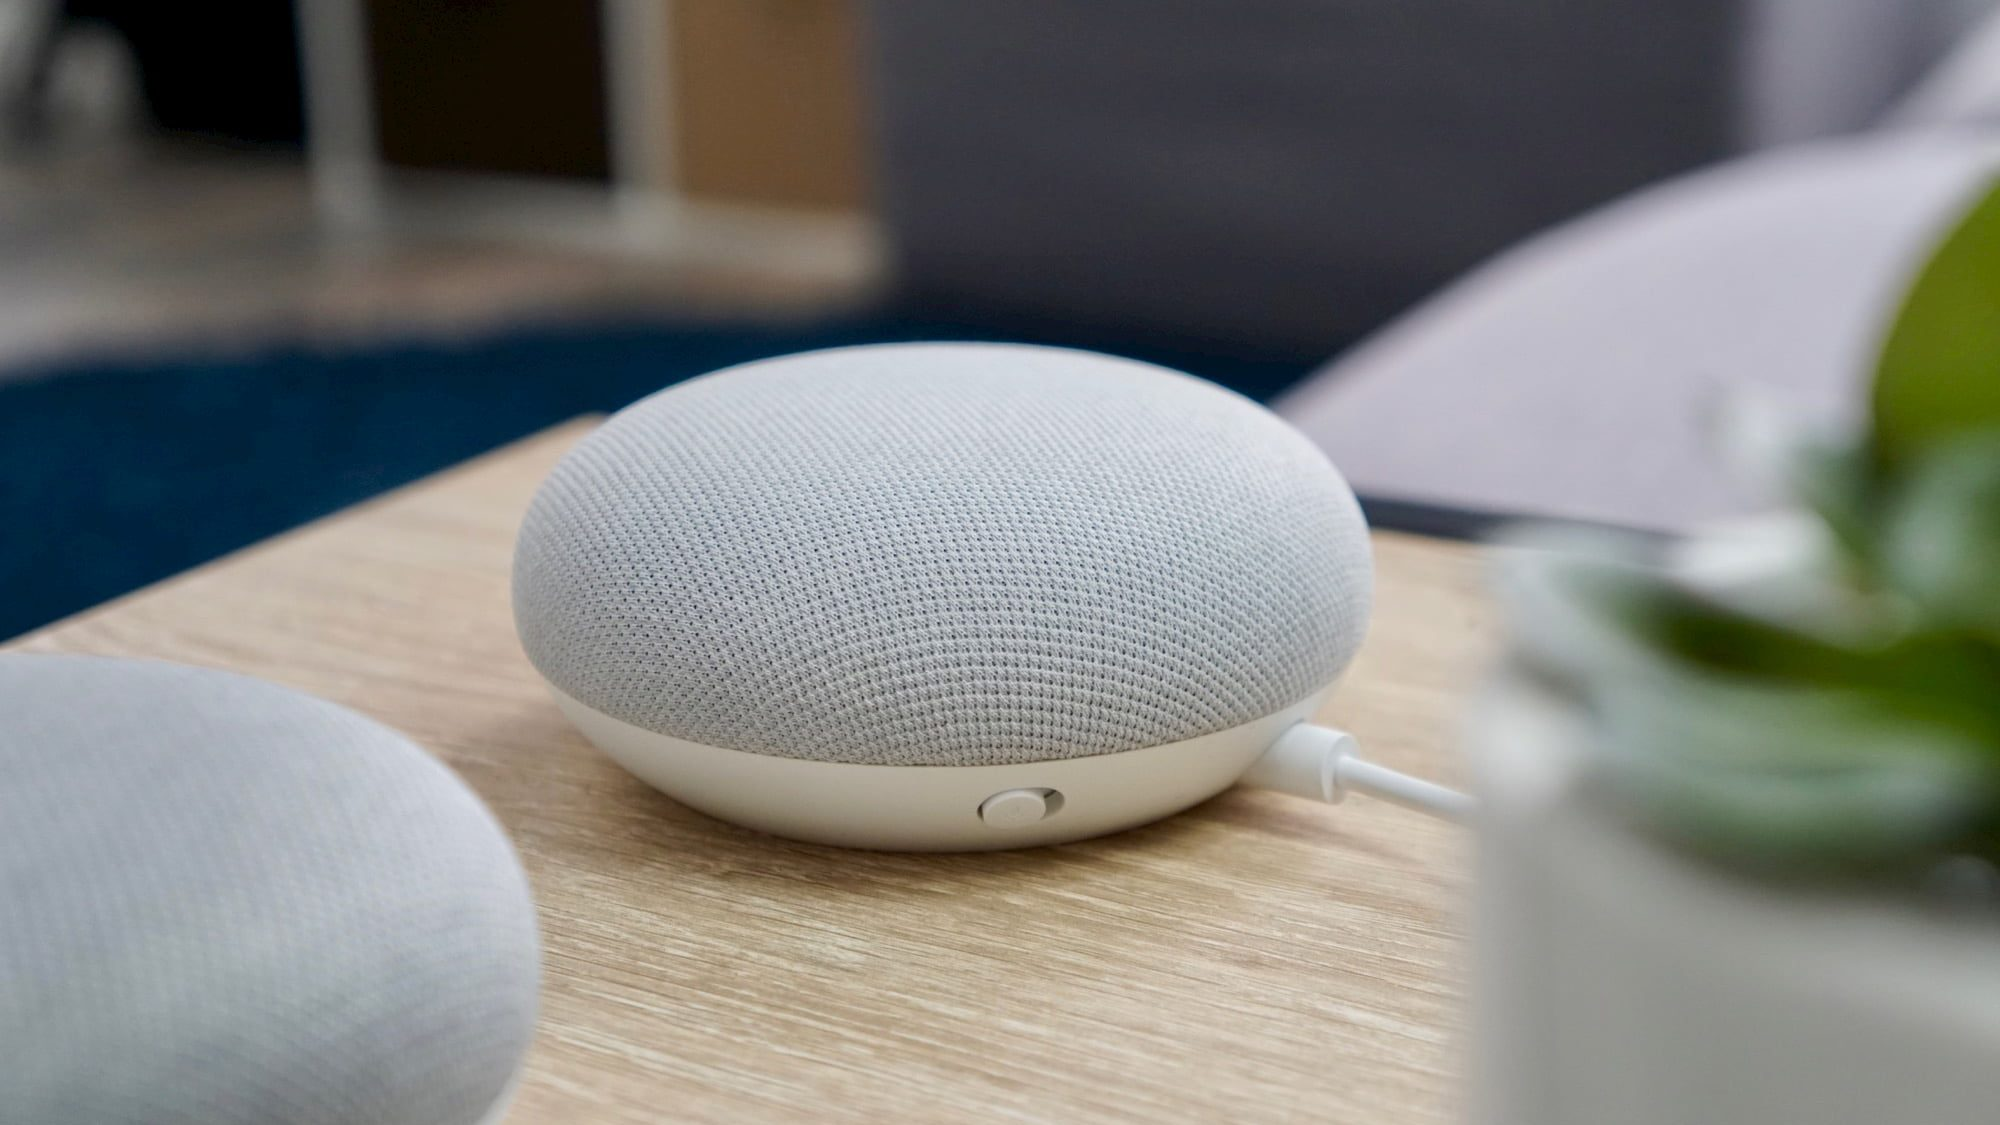 10 fun games you can play with your Google Assistant smart speaker